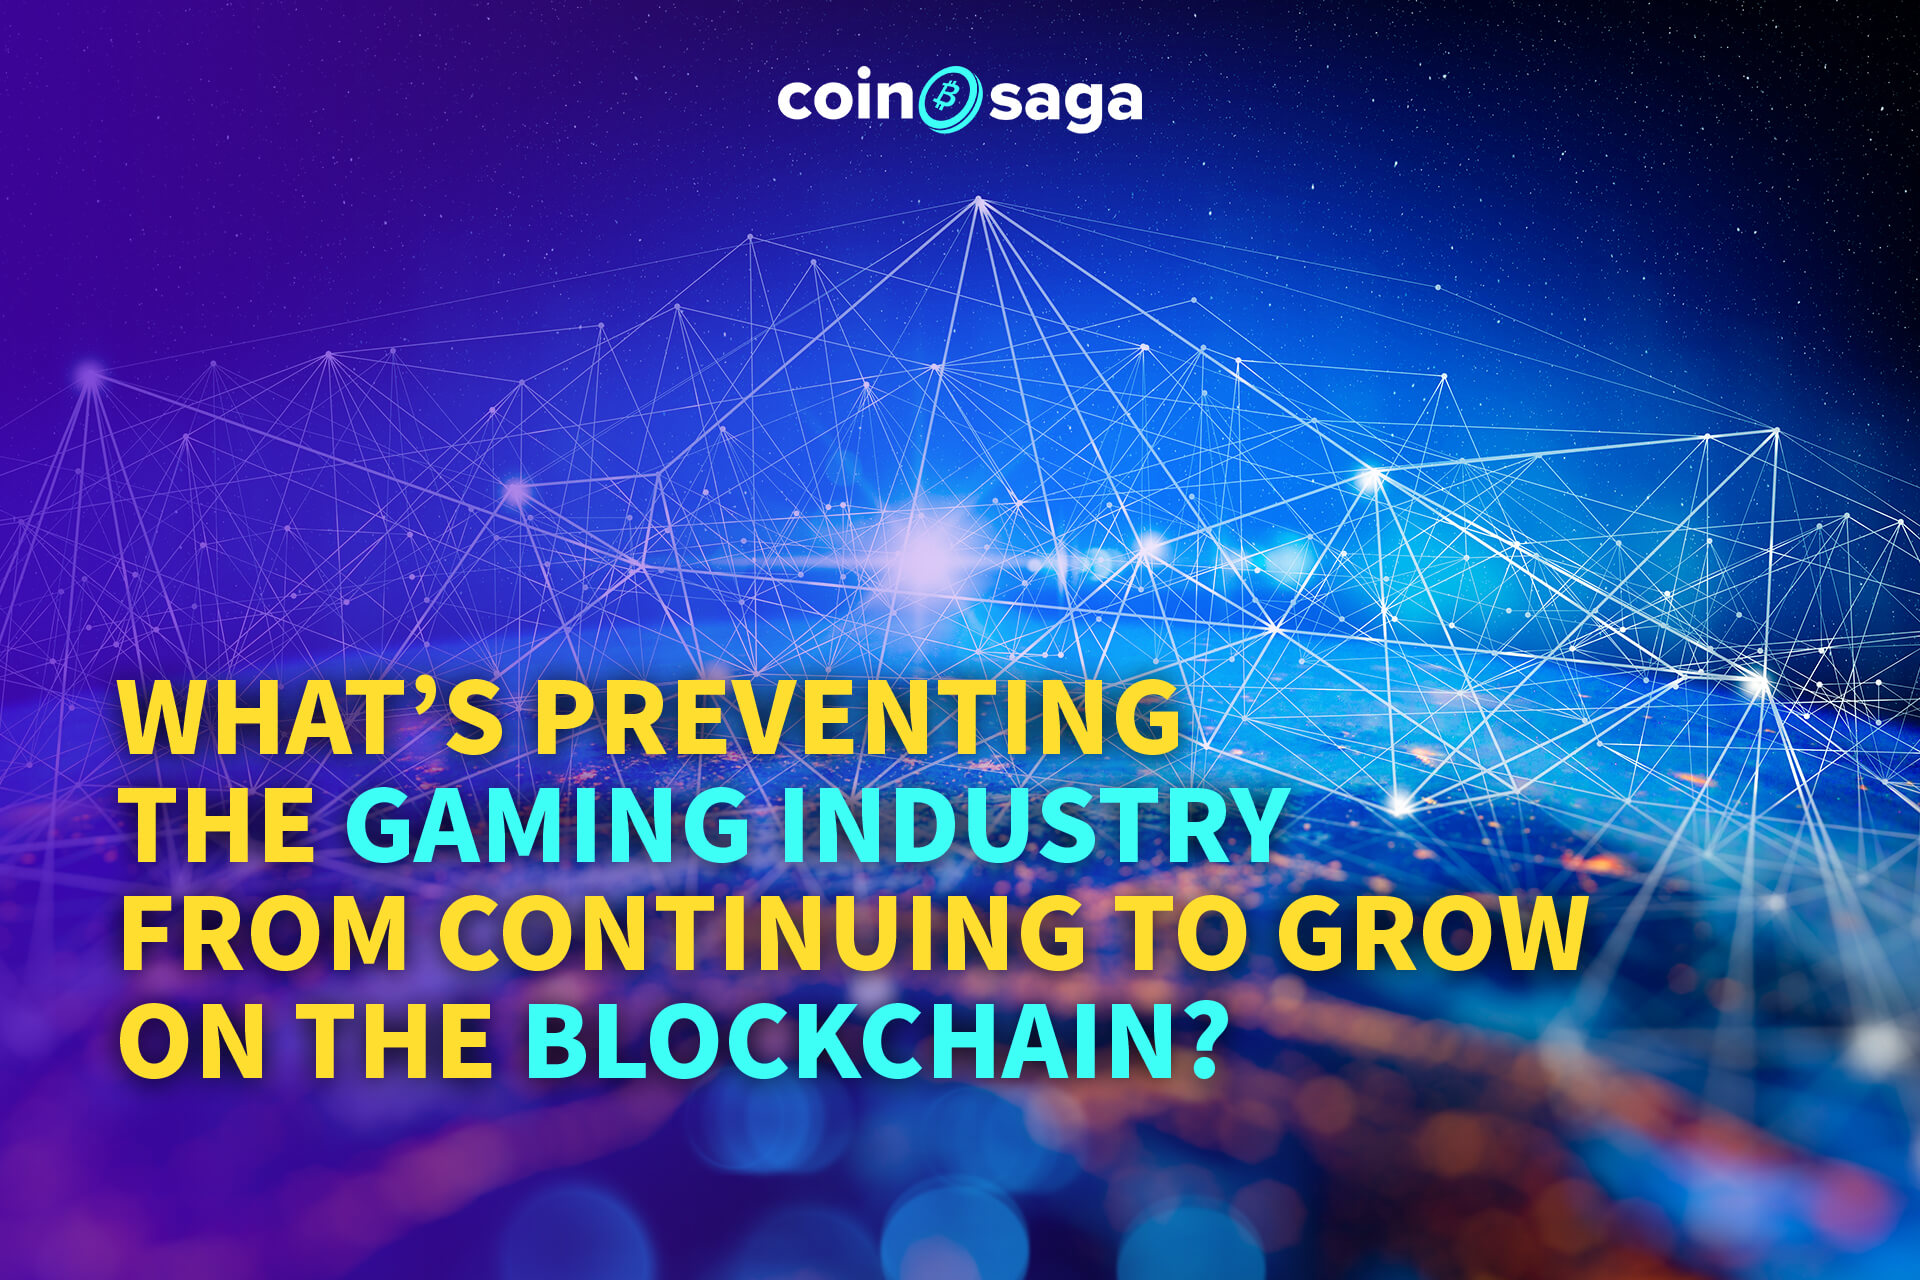 grow on the blockchain